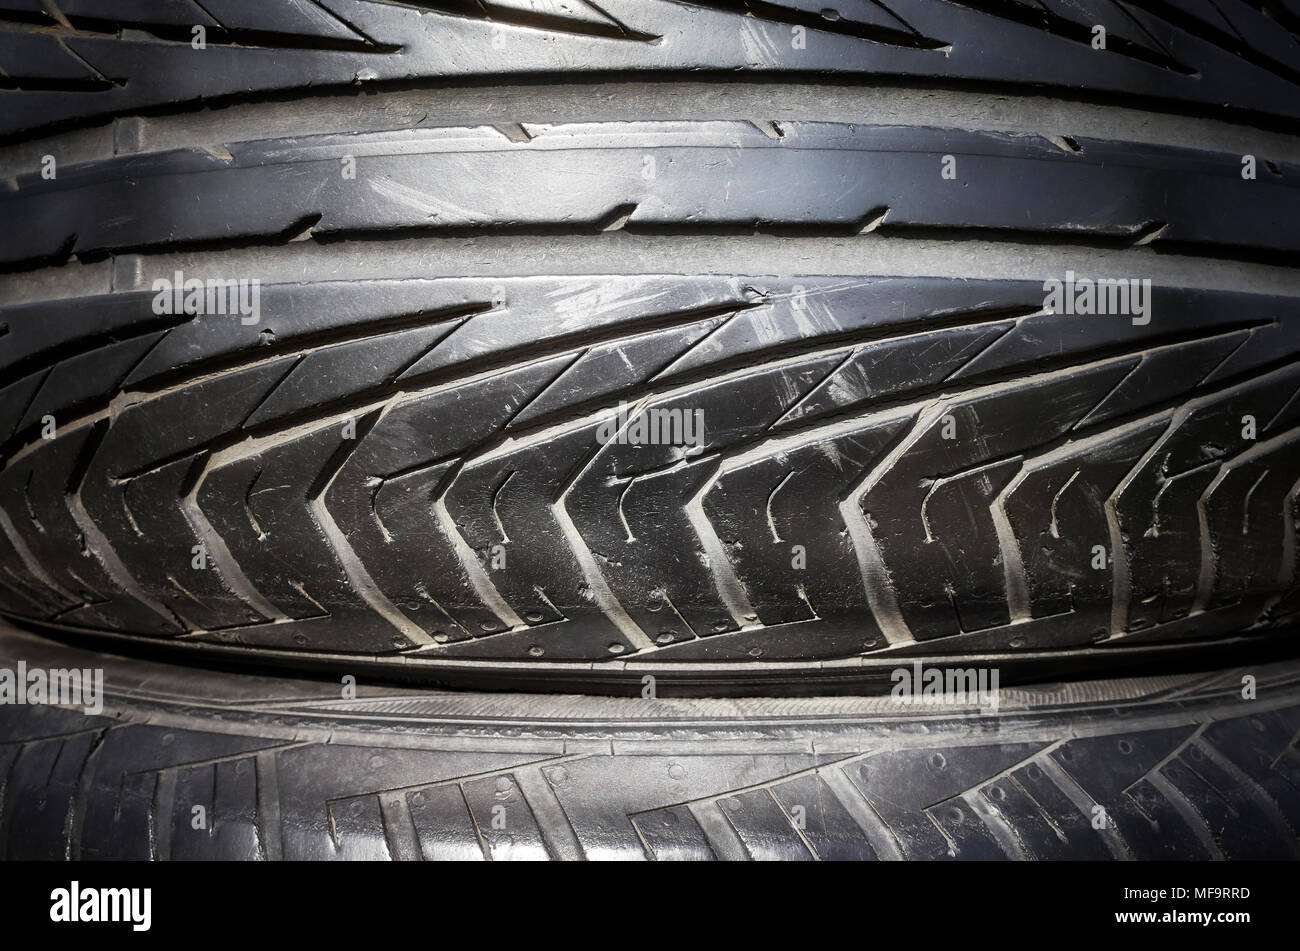 Close up picture of a used black car tire. - Stock Image